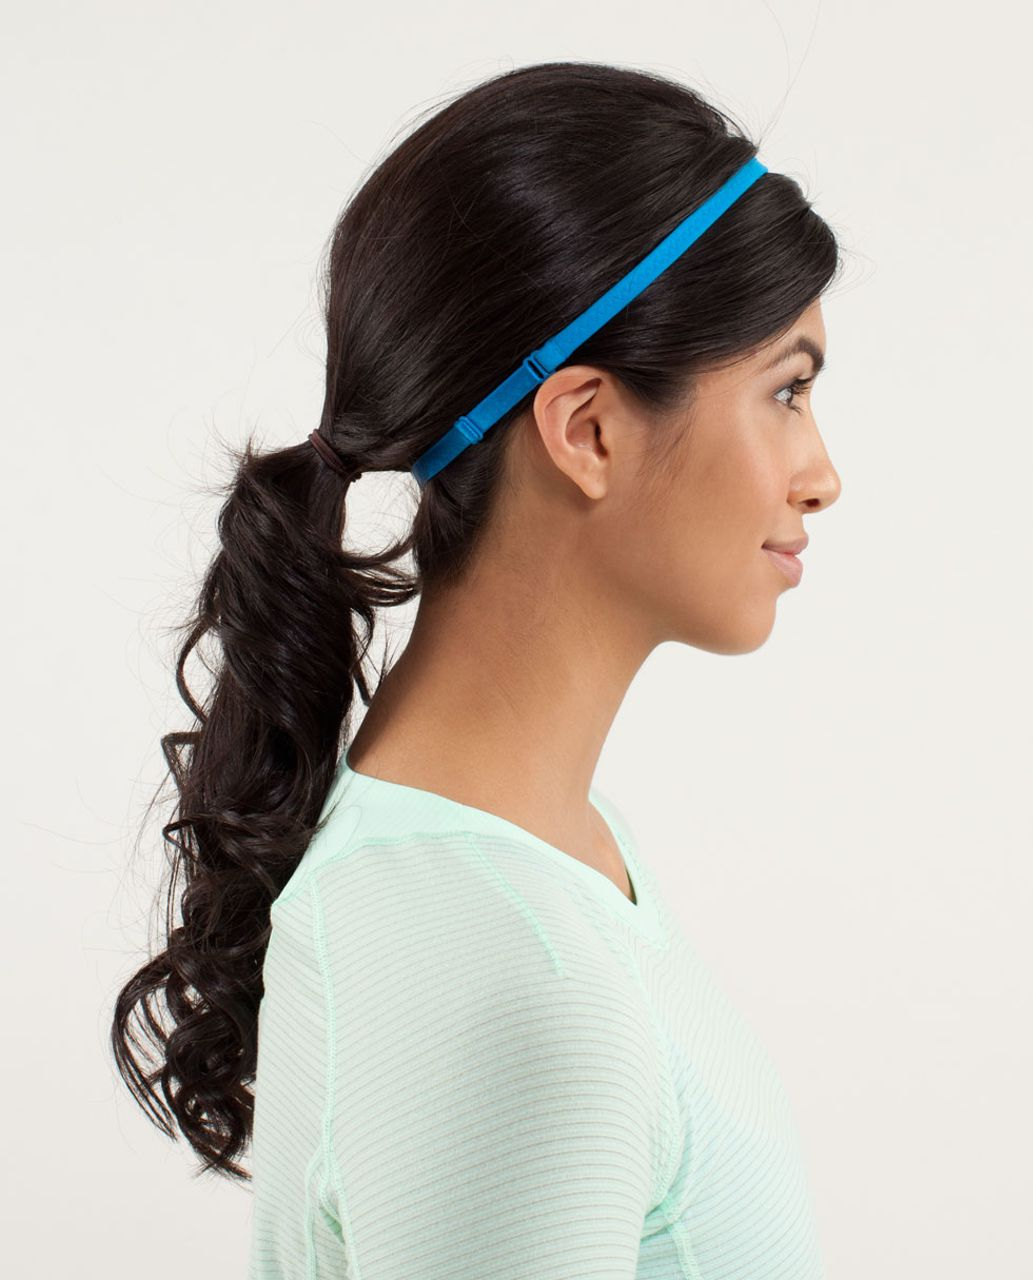 Lululemon Strappy Headband - Beach Blanket Blue